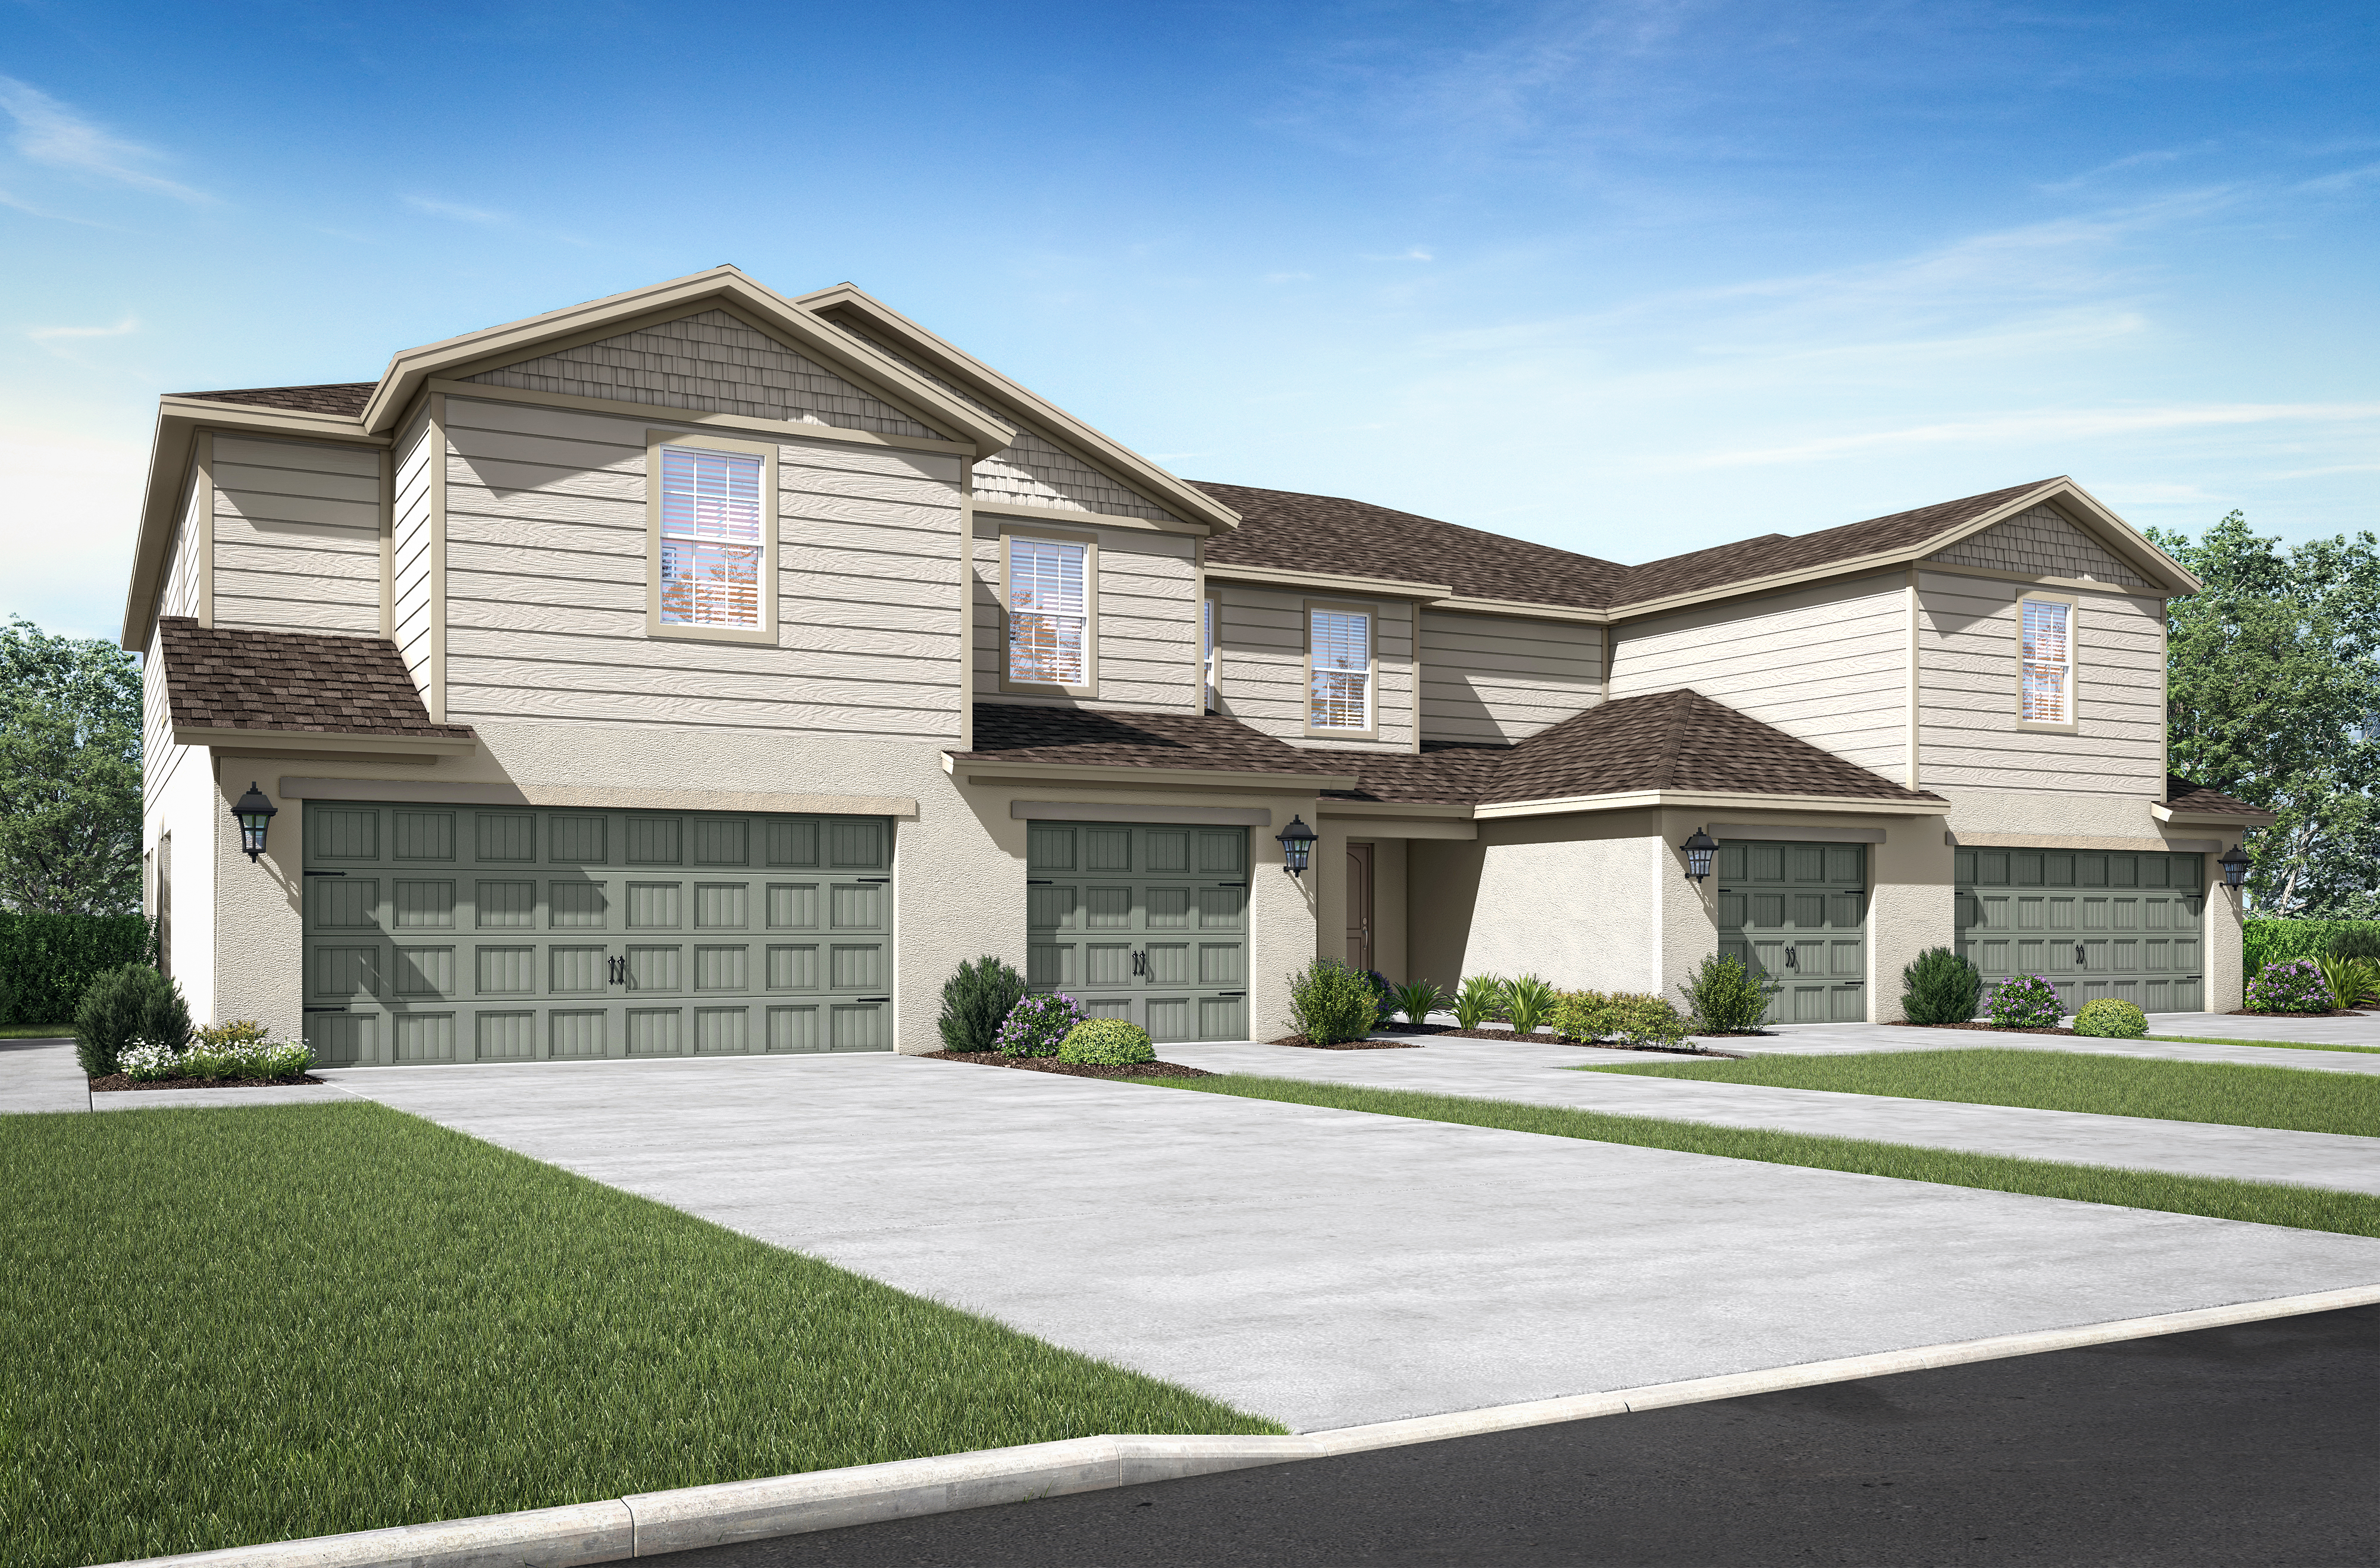 LGI Homes at Madison Village Offers Two-story Townhomes with Exceptional Upgrades